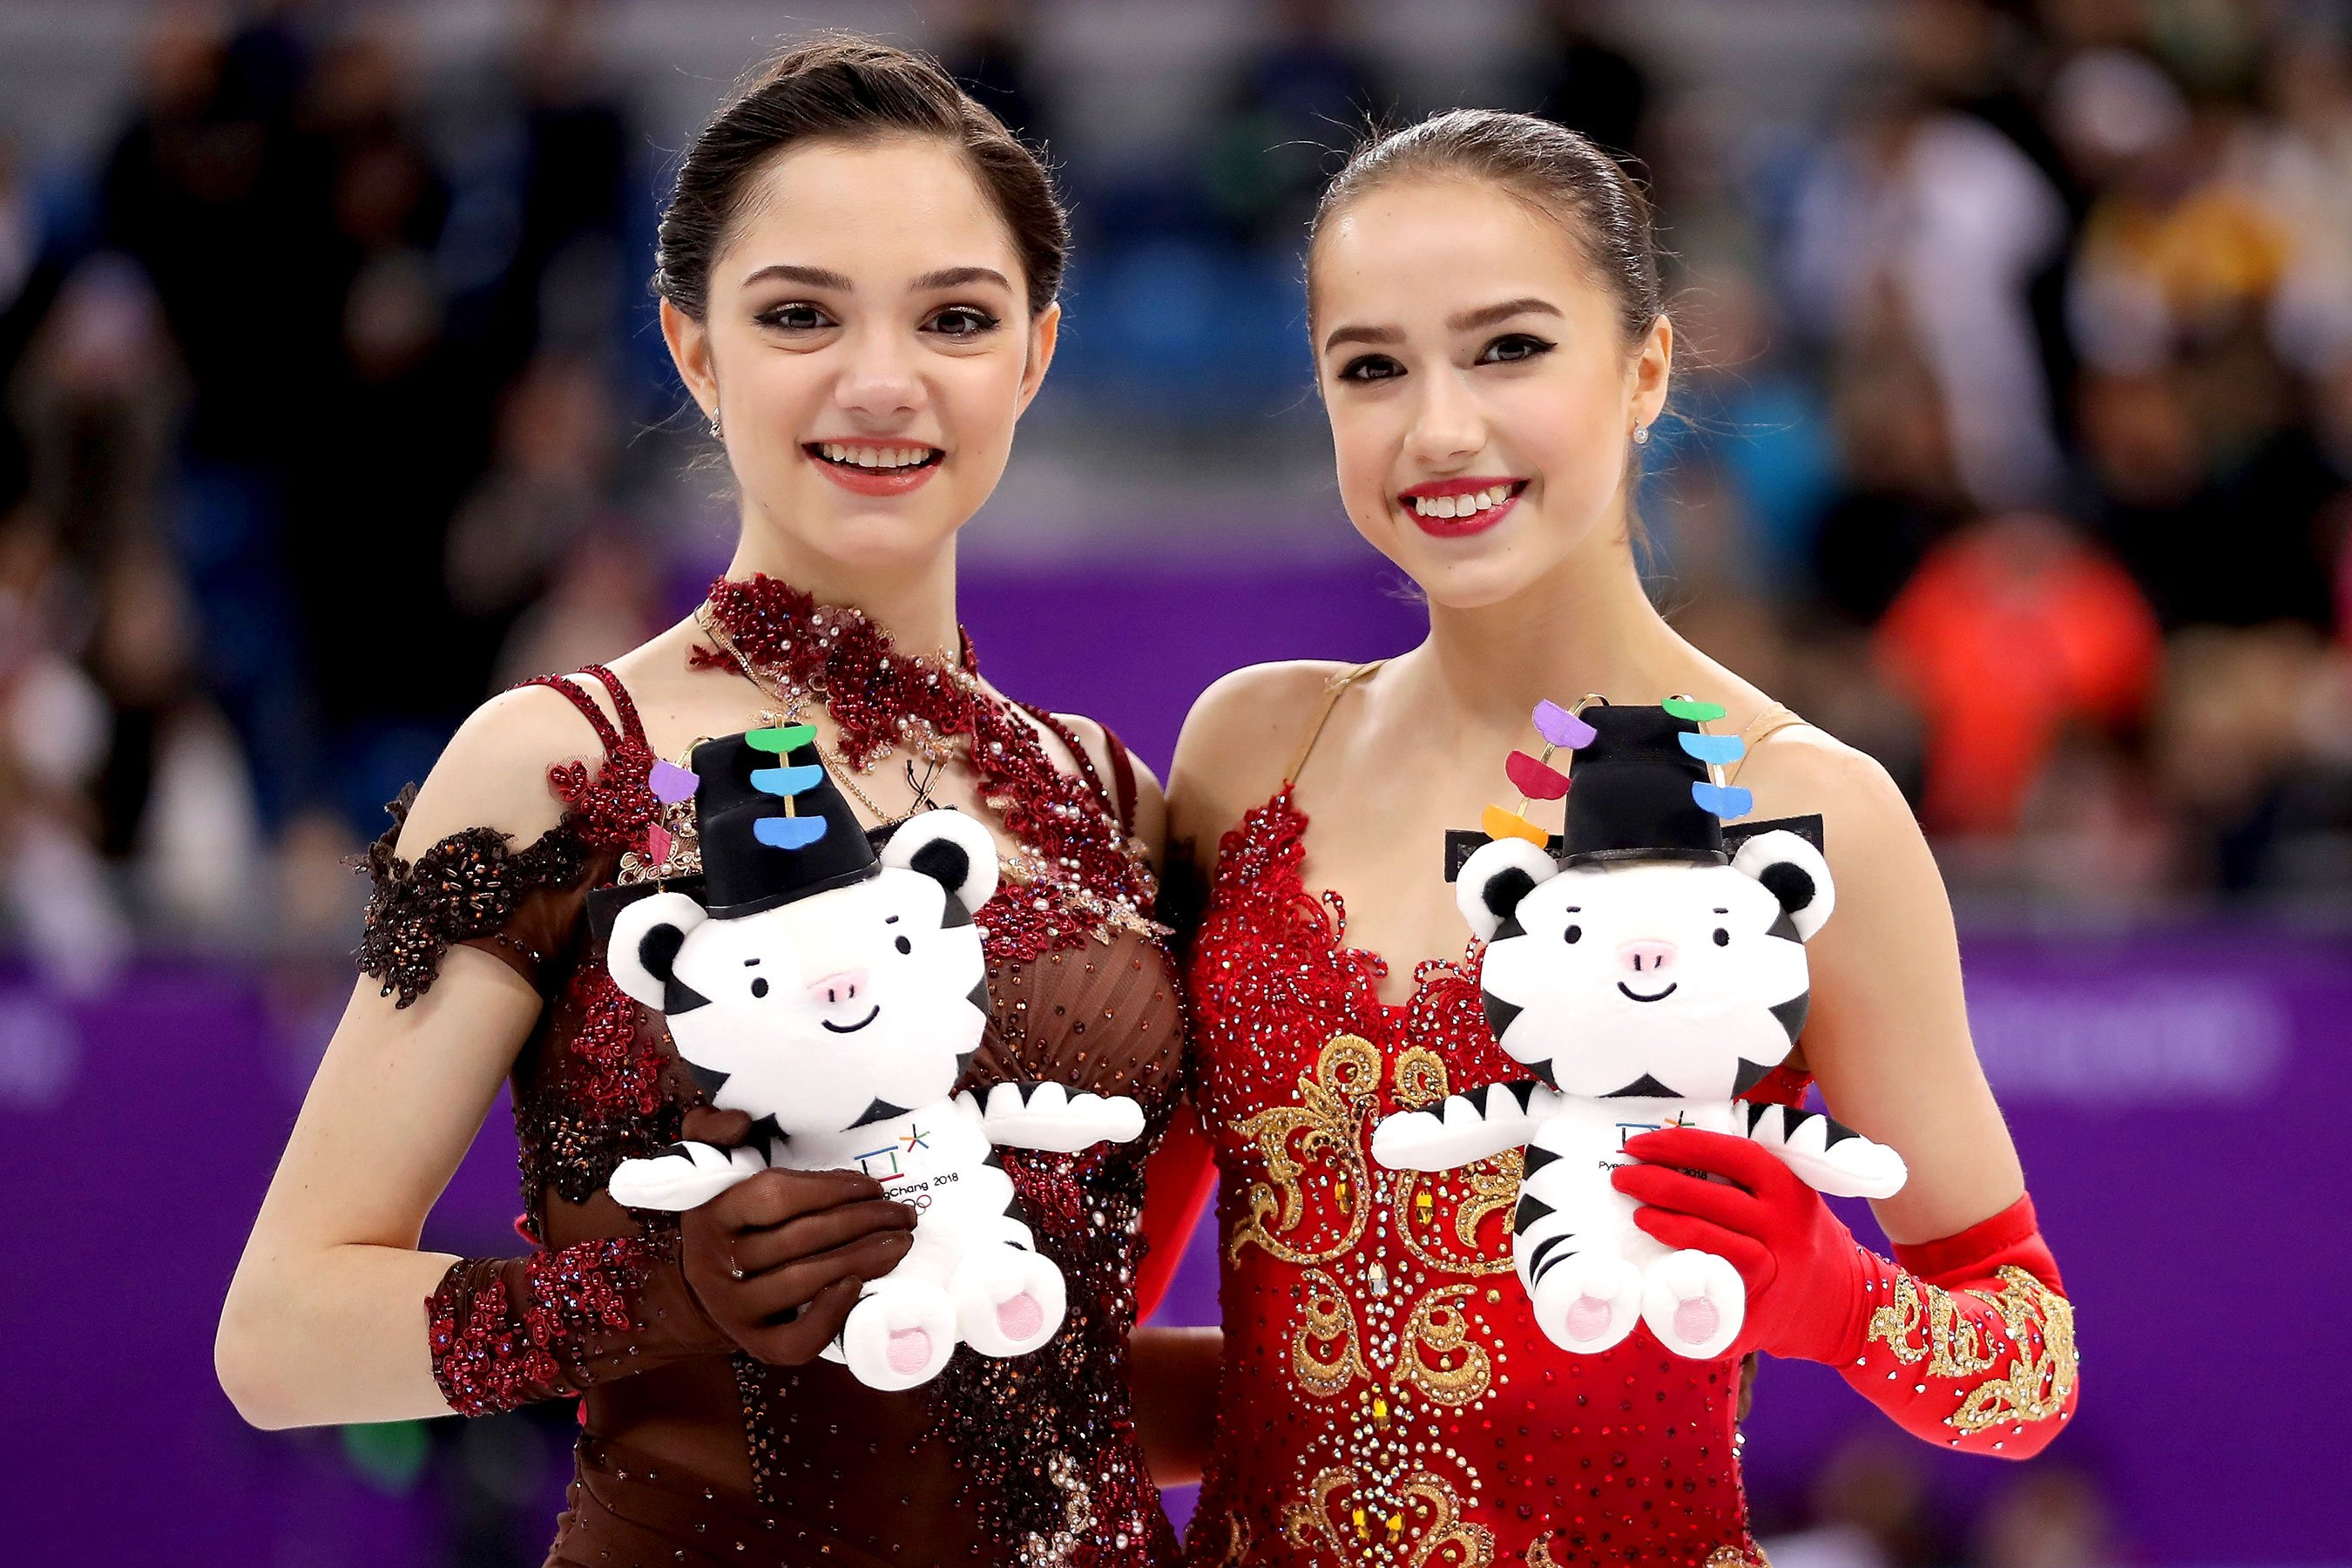 Olympics 2018: The magic of the Russian figure skating duel